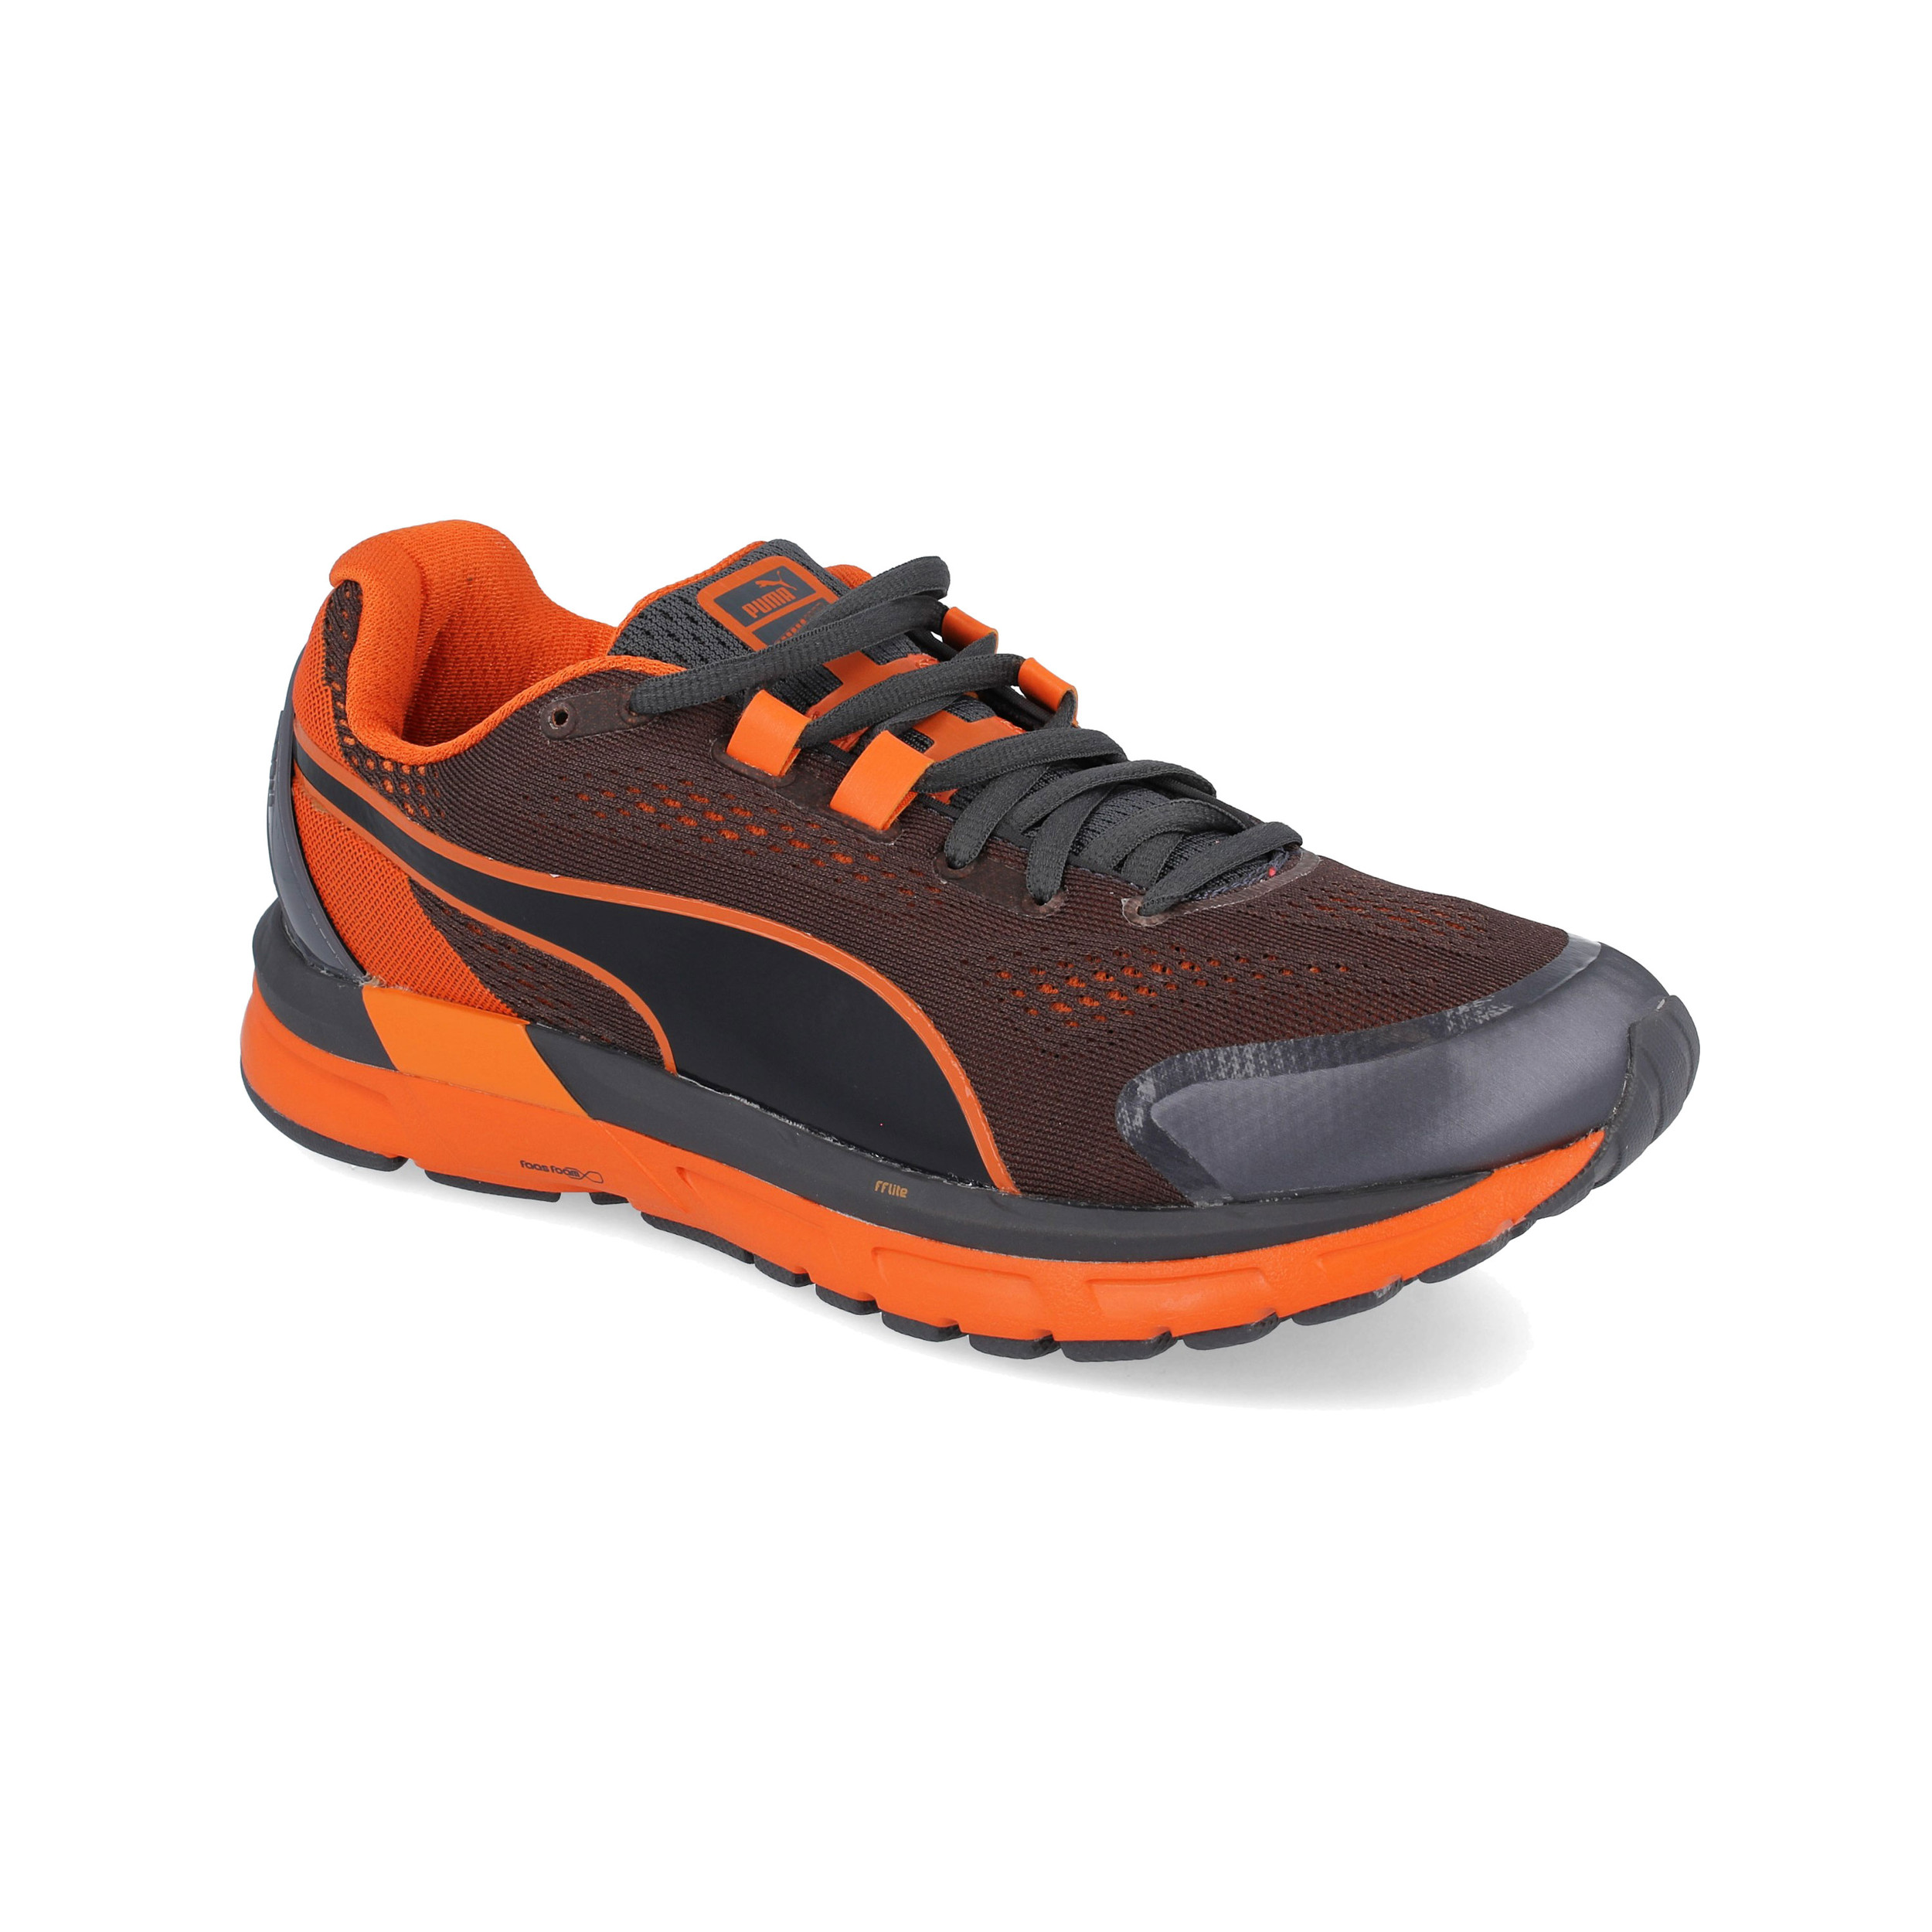 2f263ff5ffa Puma Mens Faas 600 S v2 Running Shoes Trainers Sneakers Black Orange Sports